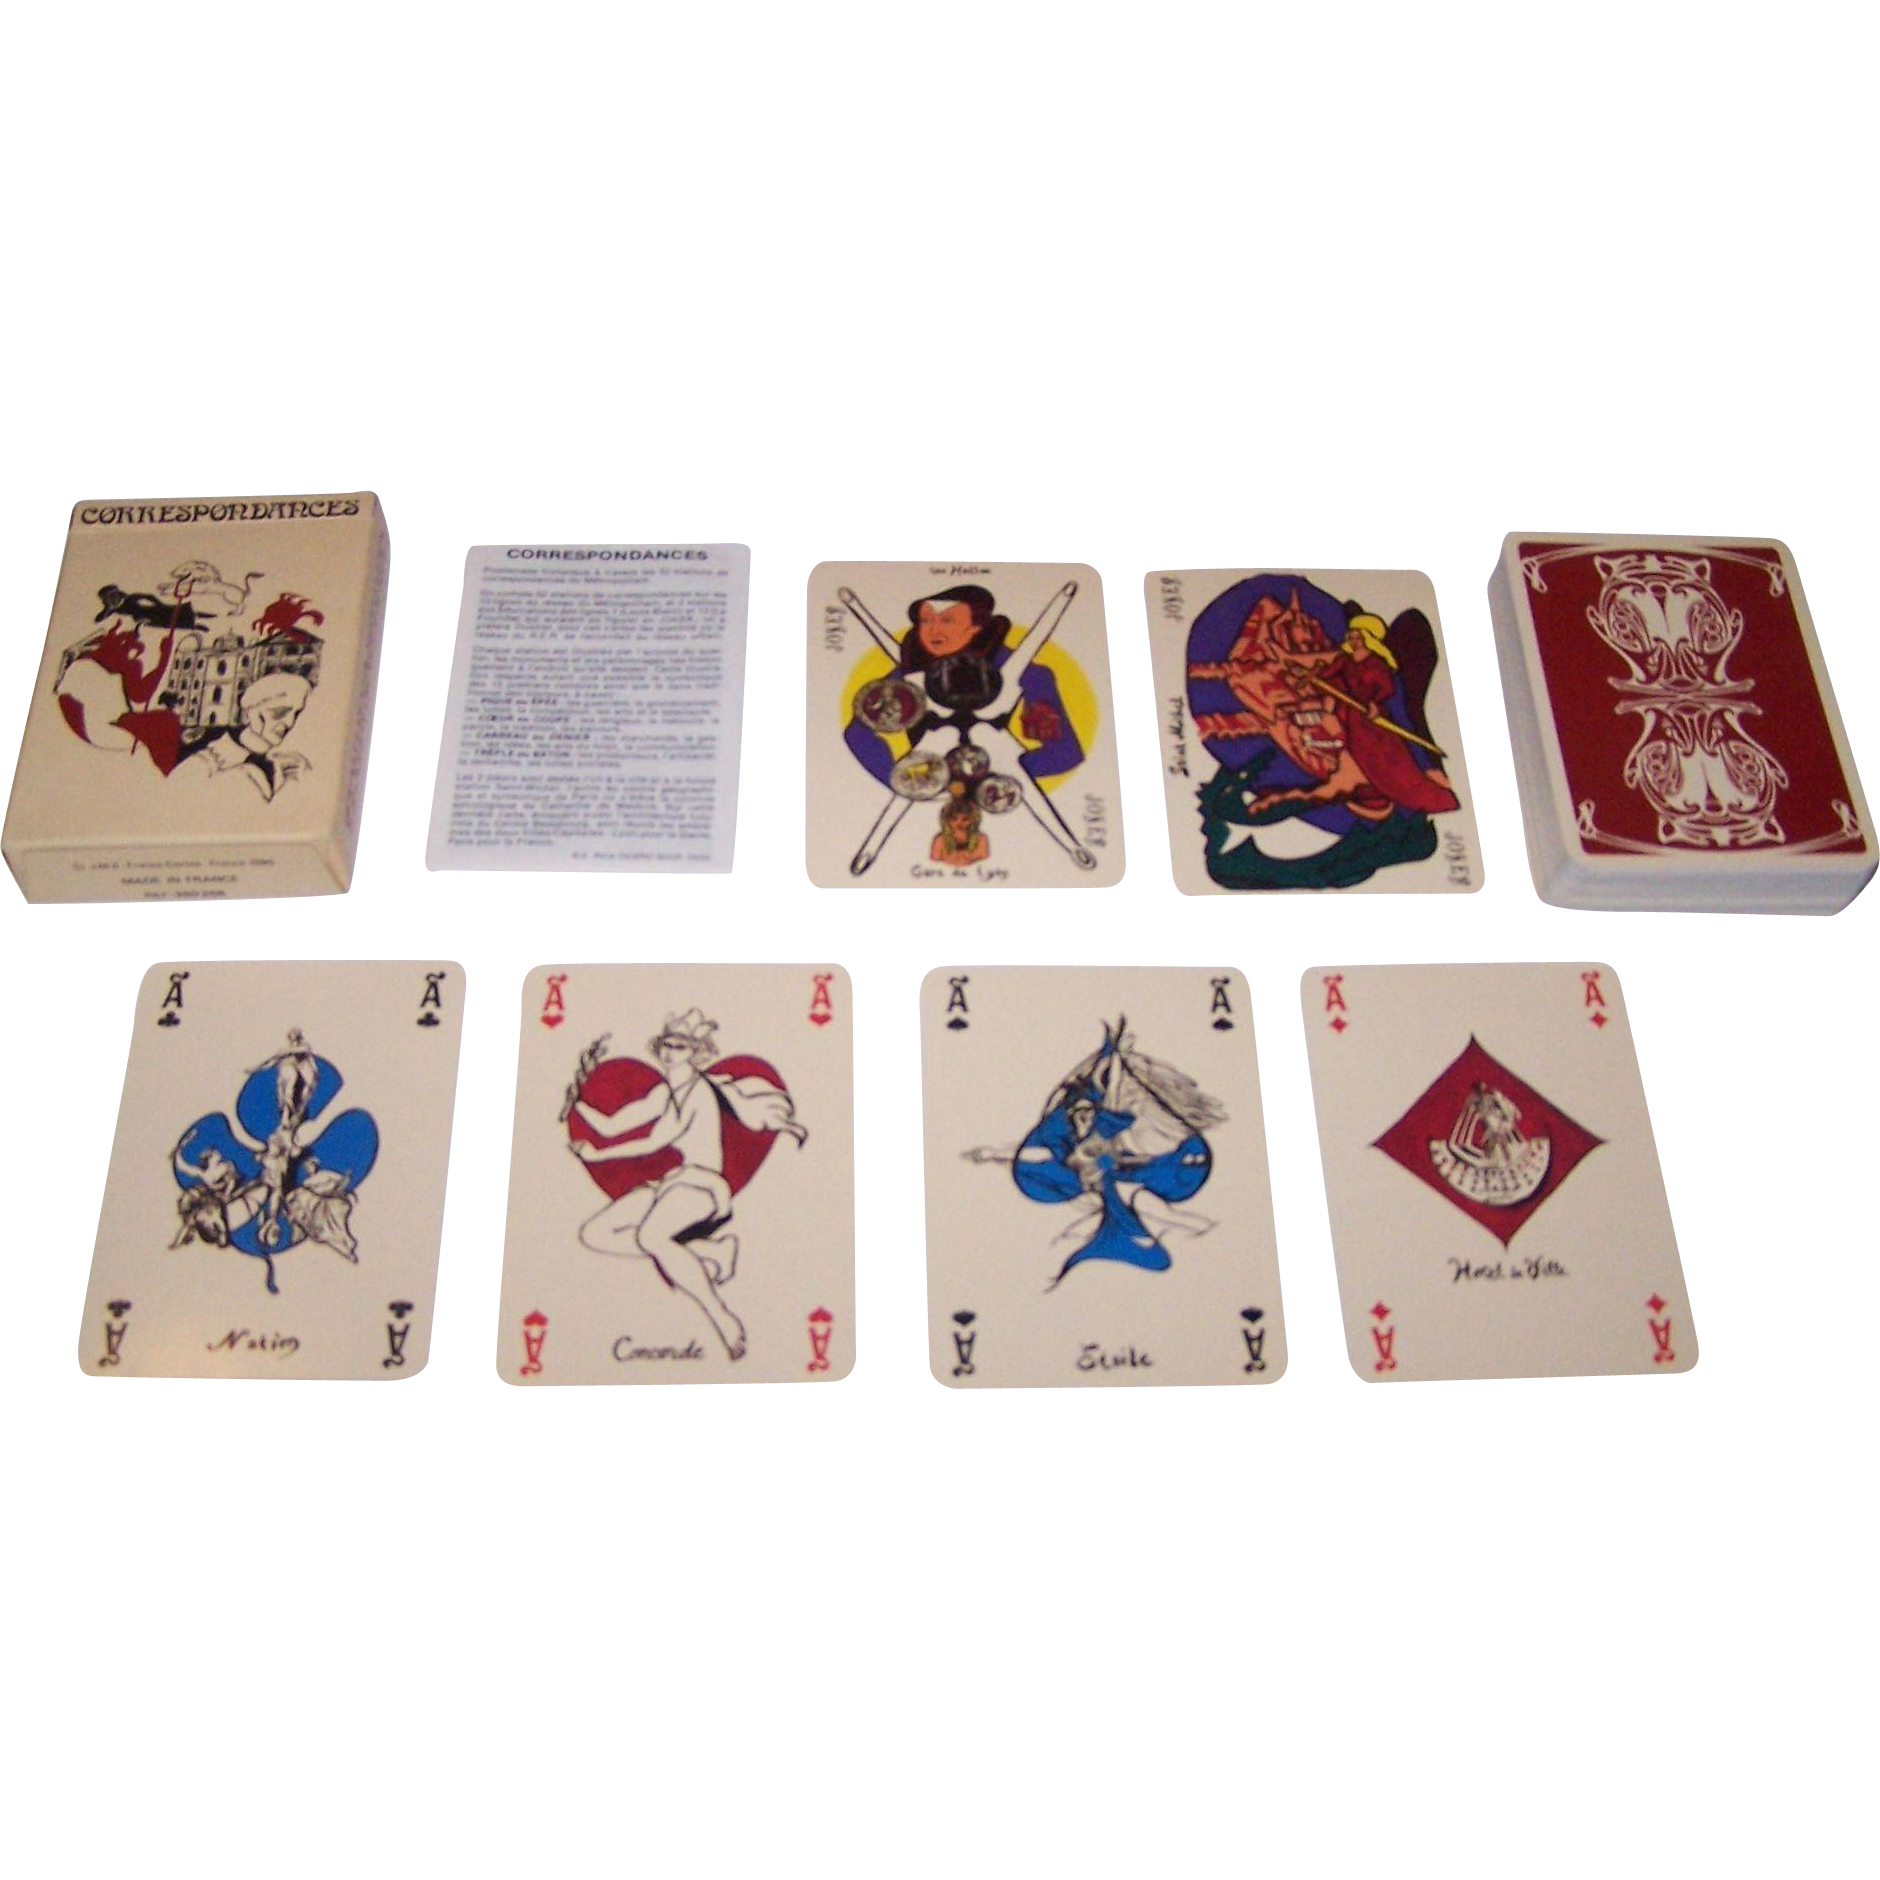 "Grimaud (France Cartes) ""Correspondances"" Playing Cards, Laurence Caiazzo and Pica-Cicero-Scop Designs, c.1985"